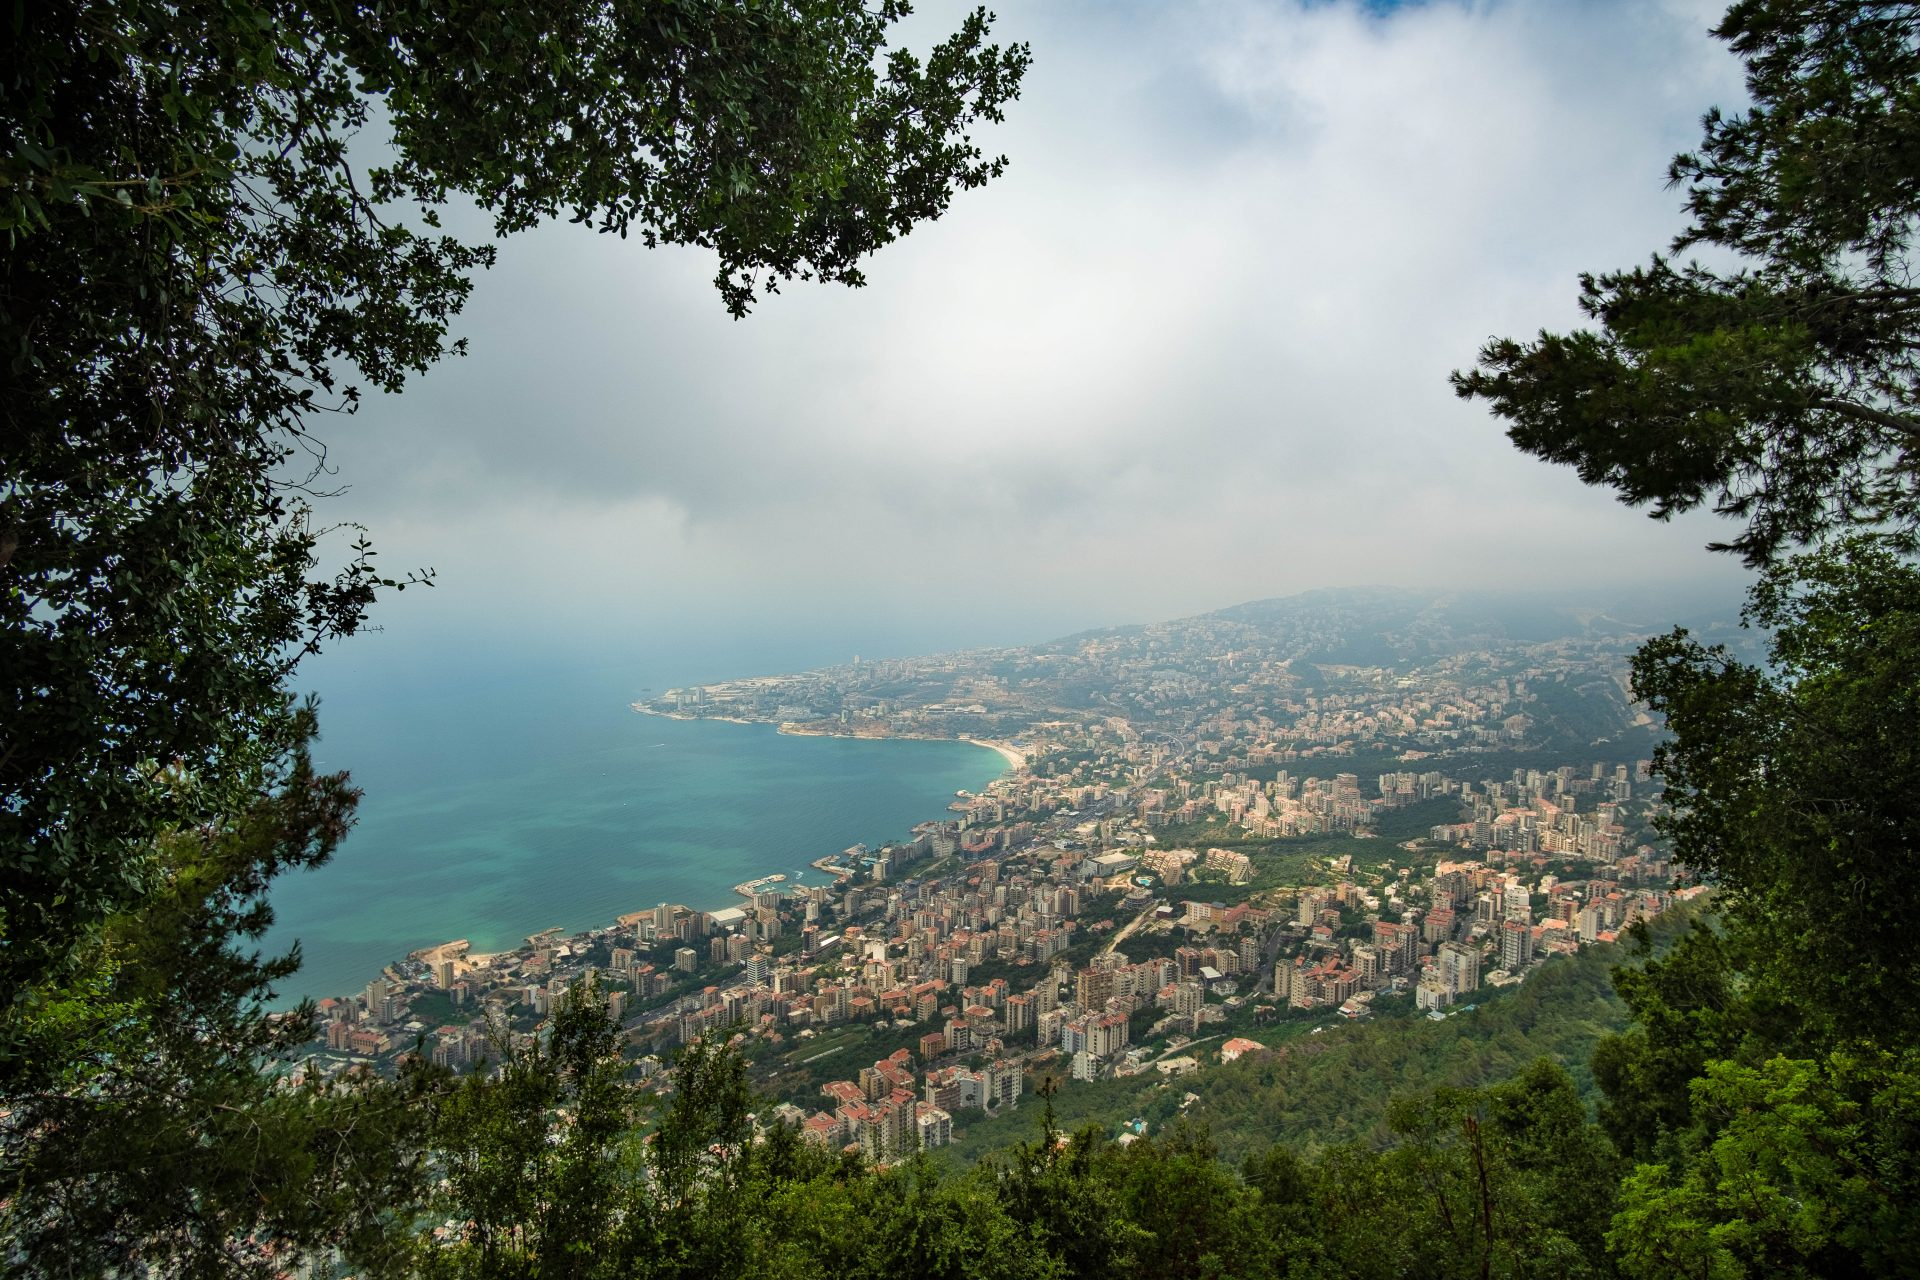 Panoramic view of the bay of jounieh from harissa photo by Jo Kassis